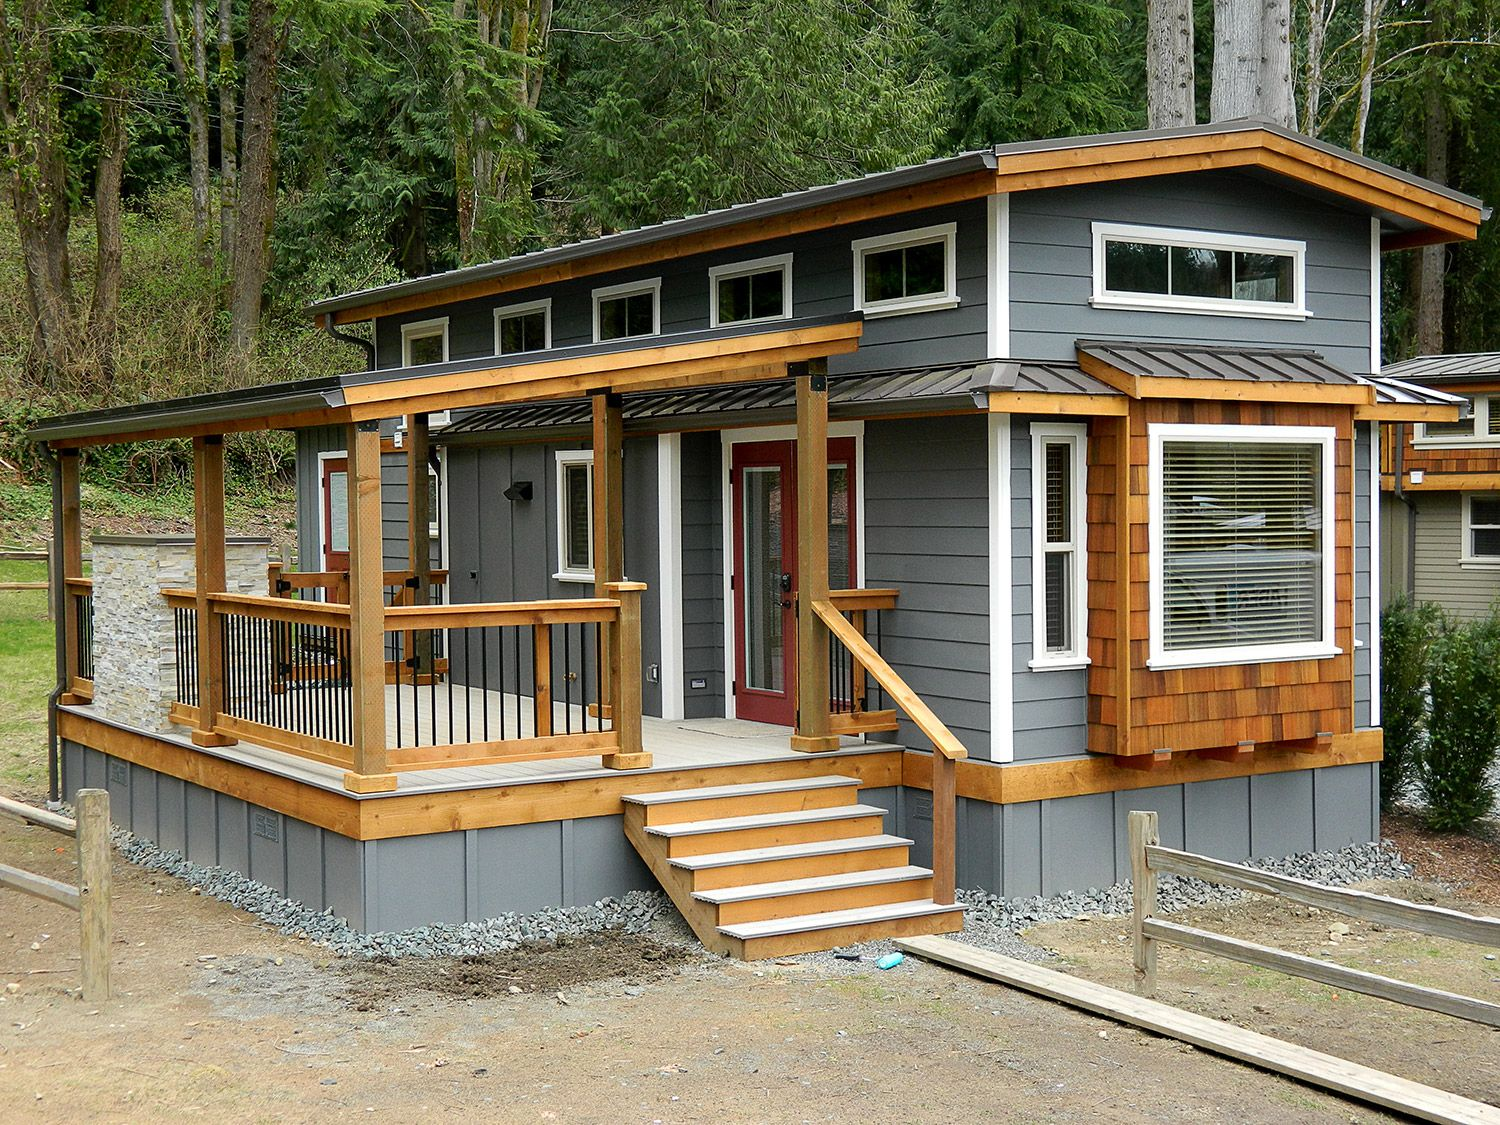 17 Best images about 10 12 ft wide tiny cabins on Pinterest